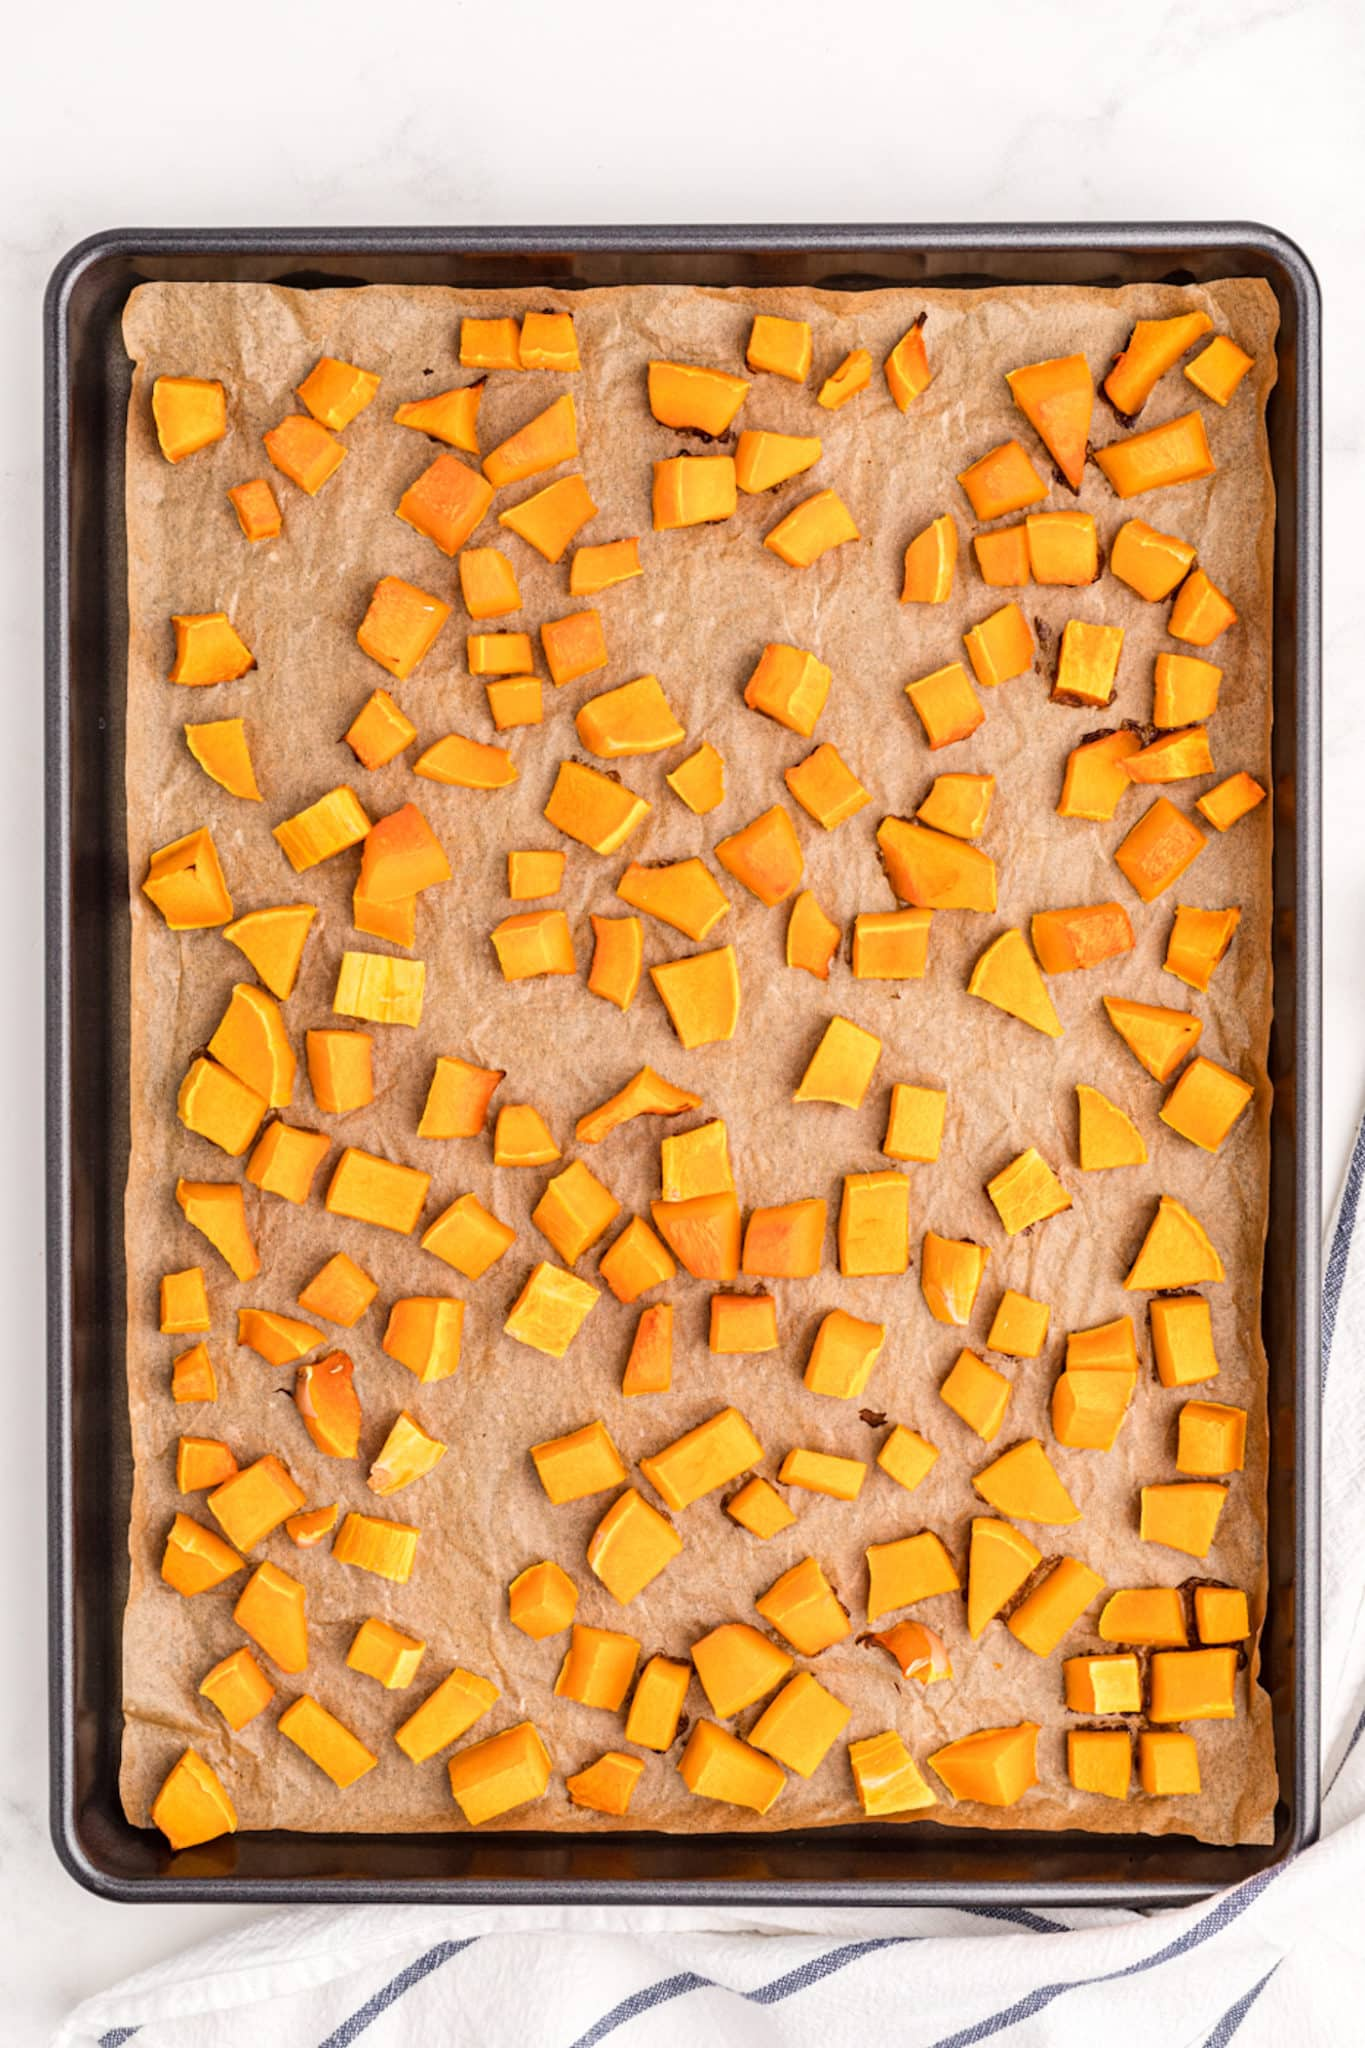 roasted squash pieces on a baking sheet